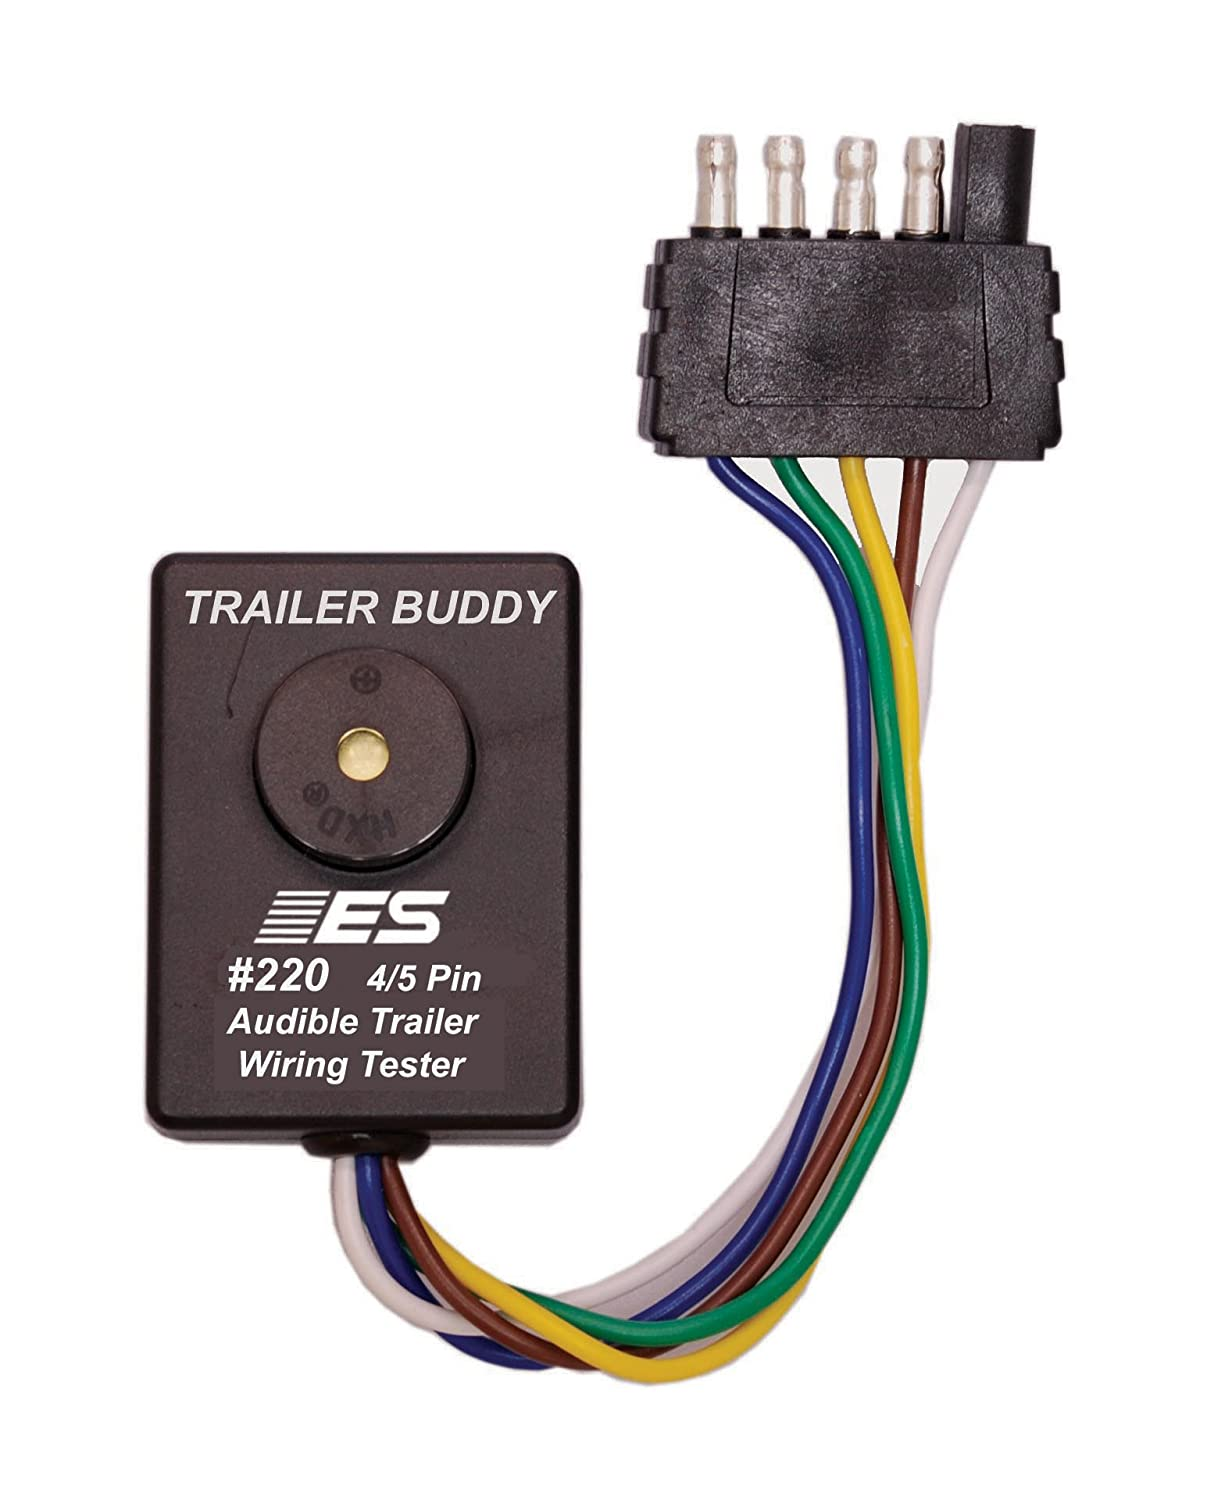 Vehicle Trailer Wiring Harness Tester Get Free Image About Wire Cable On Rh Plasmapen Co